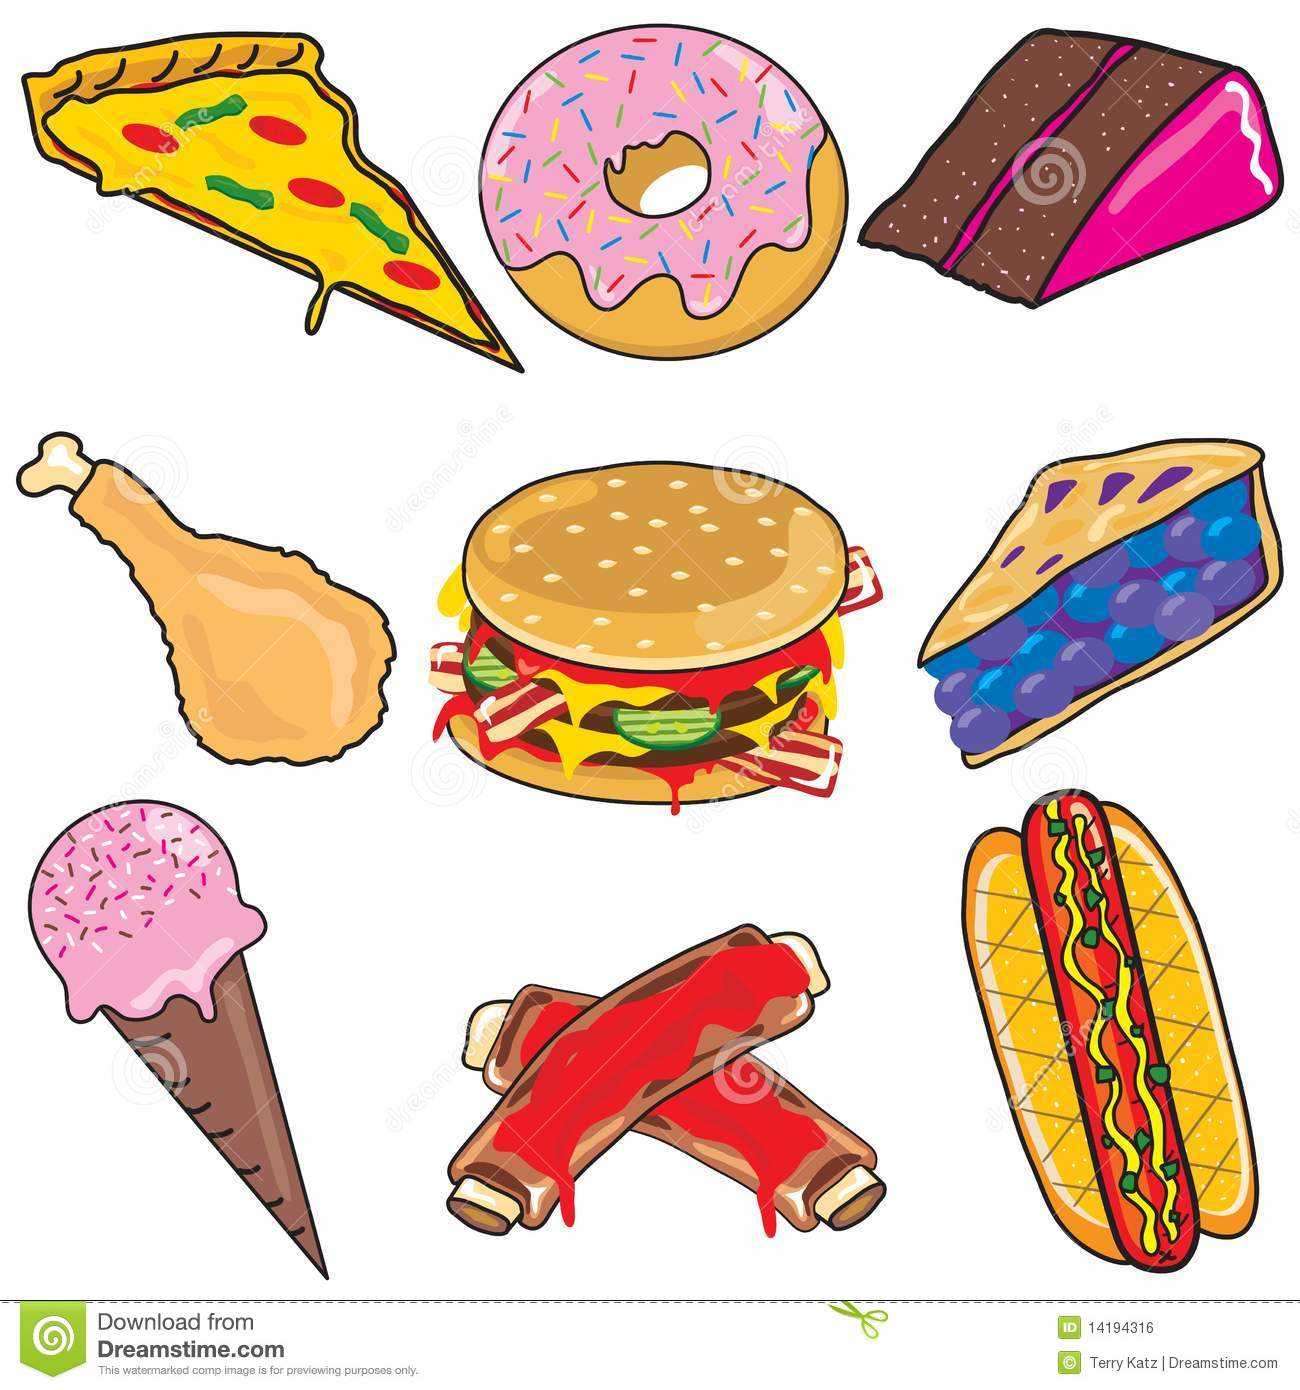 Junk Food Clipart Elements And Icons Royalty Free Stock Image - Image ...